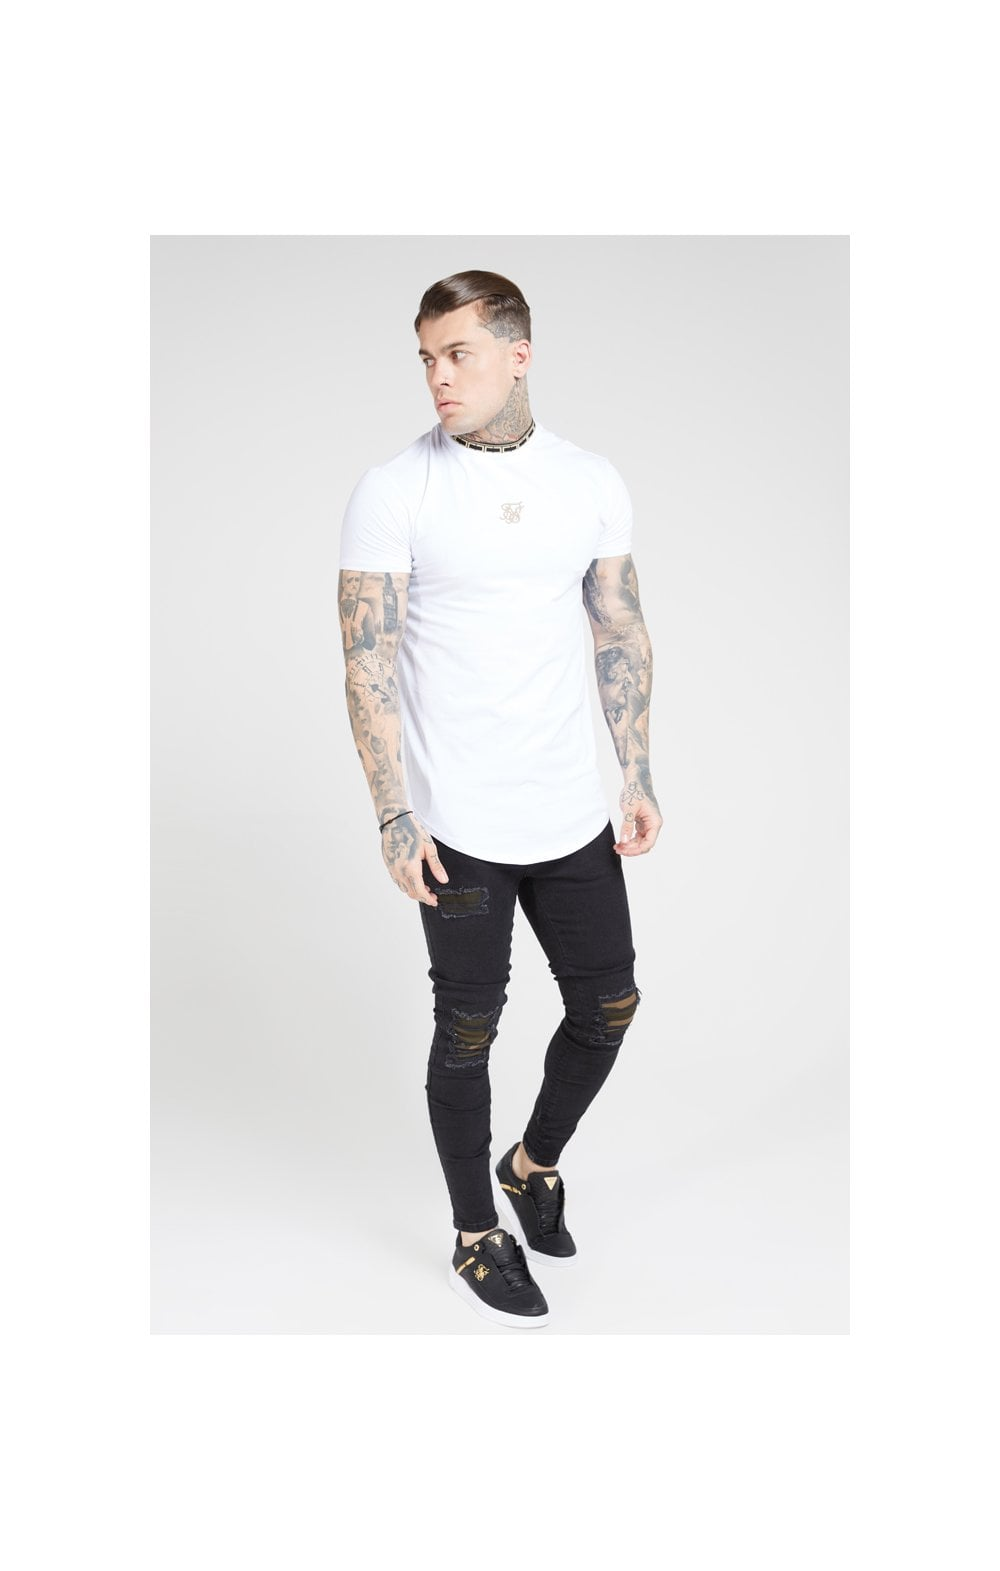 Load image into Gallery viewer, SikSilk Burst Knee Low Rise Denims - Washed Black & Camo (4)